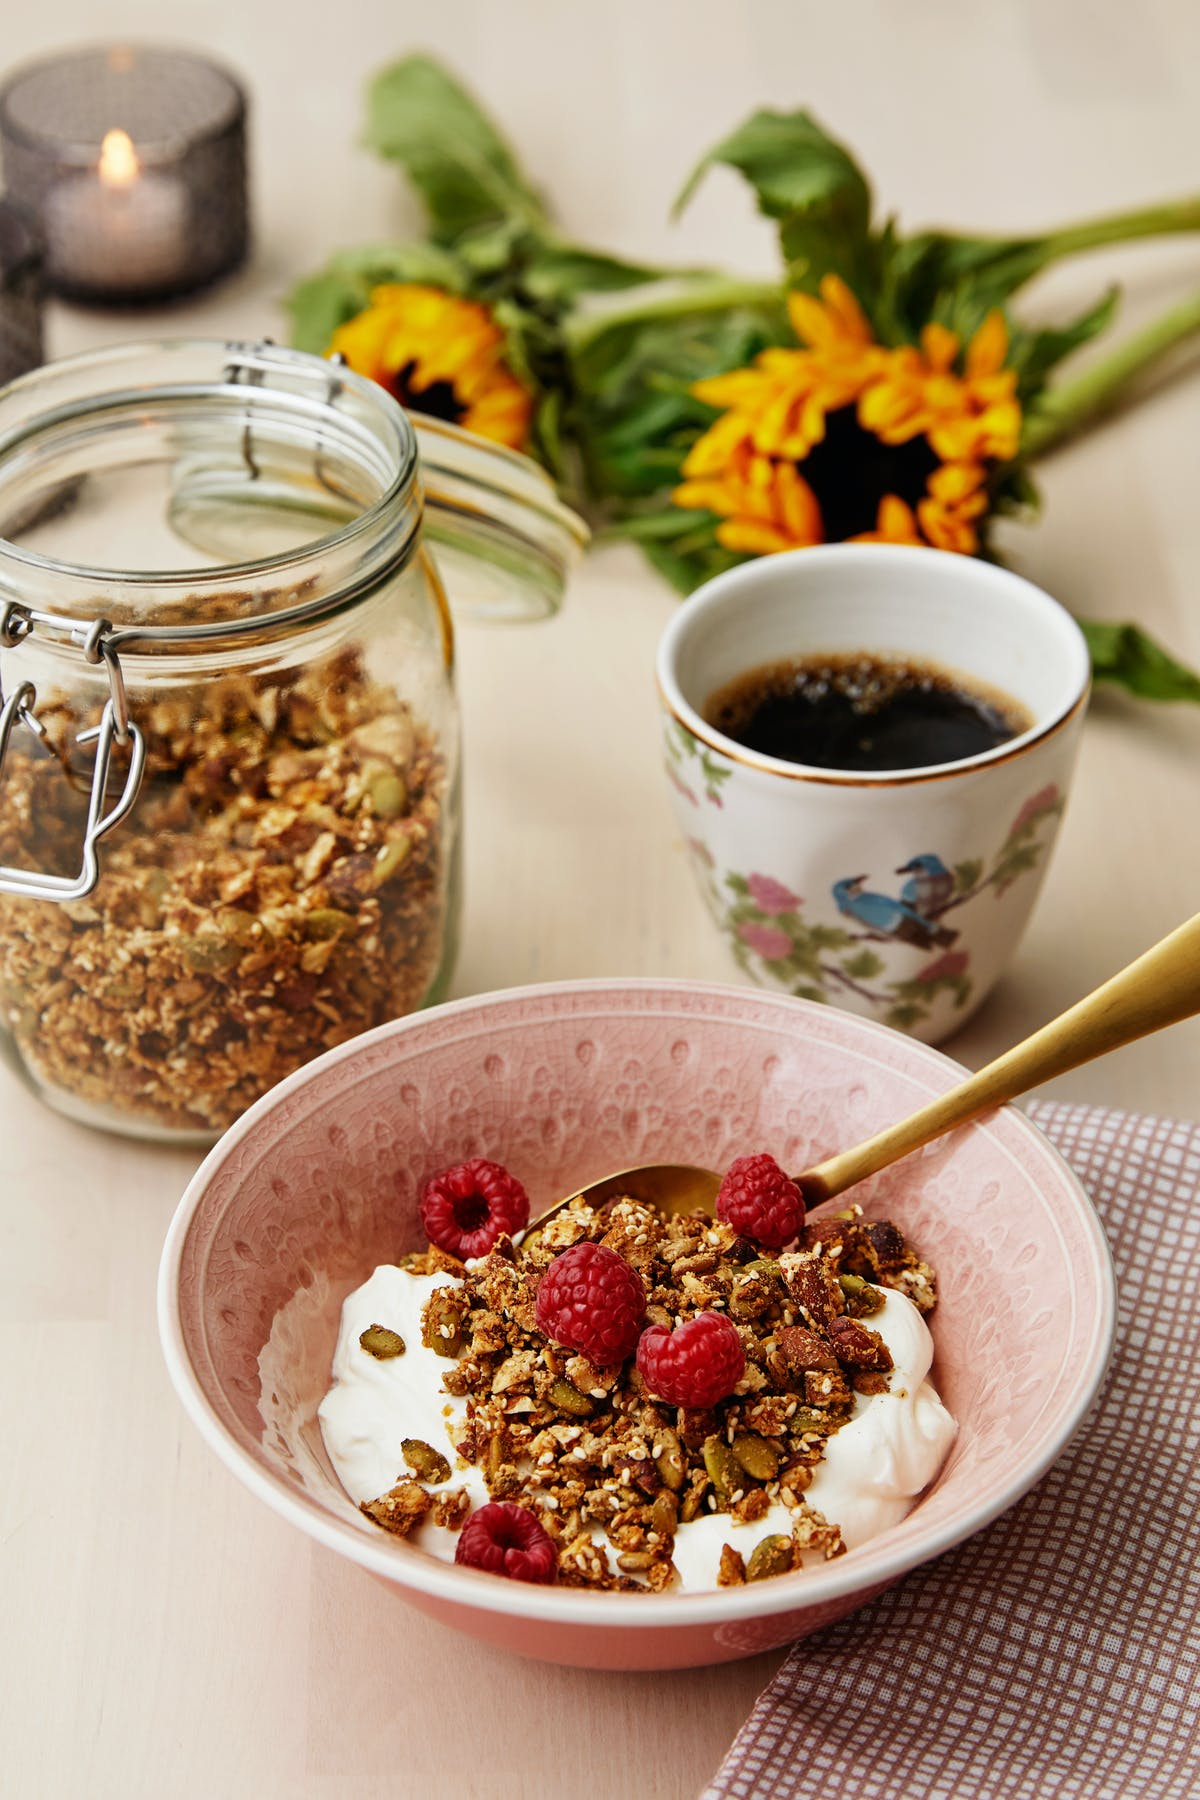 Low-carb granola with yogurt and raspberries